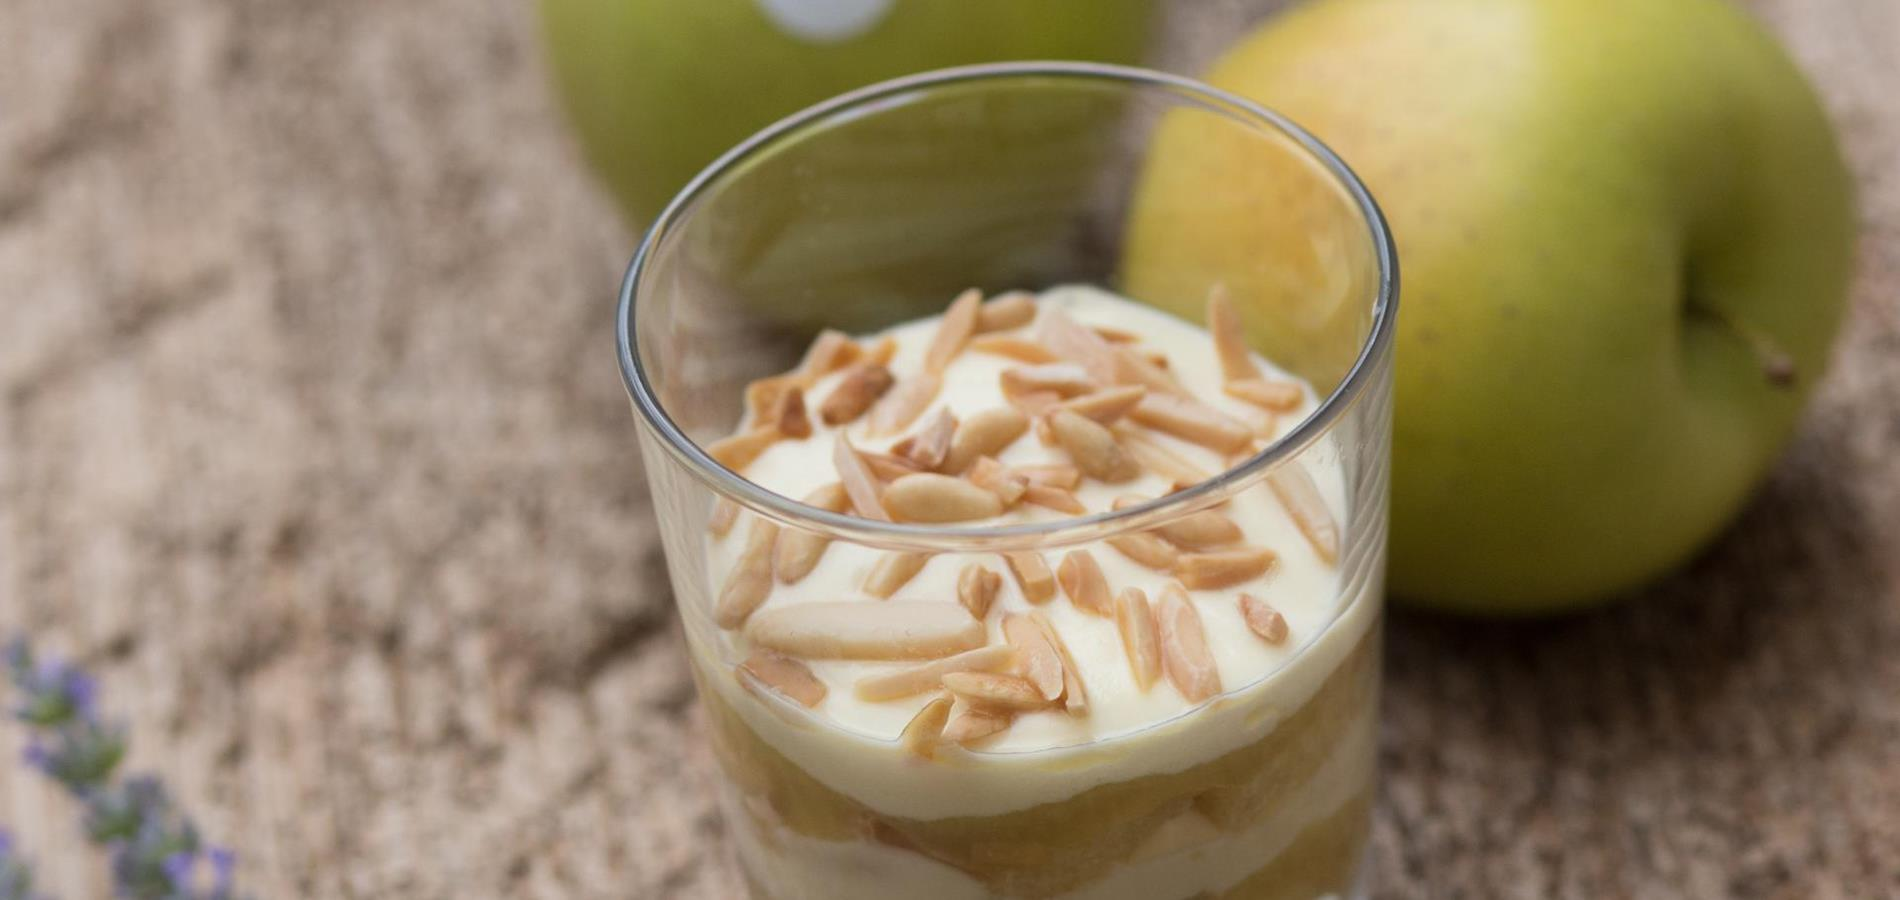 Apple tiramisù in glass